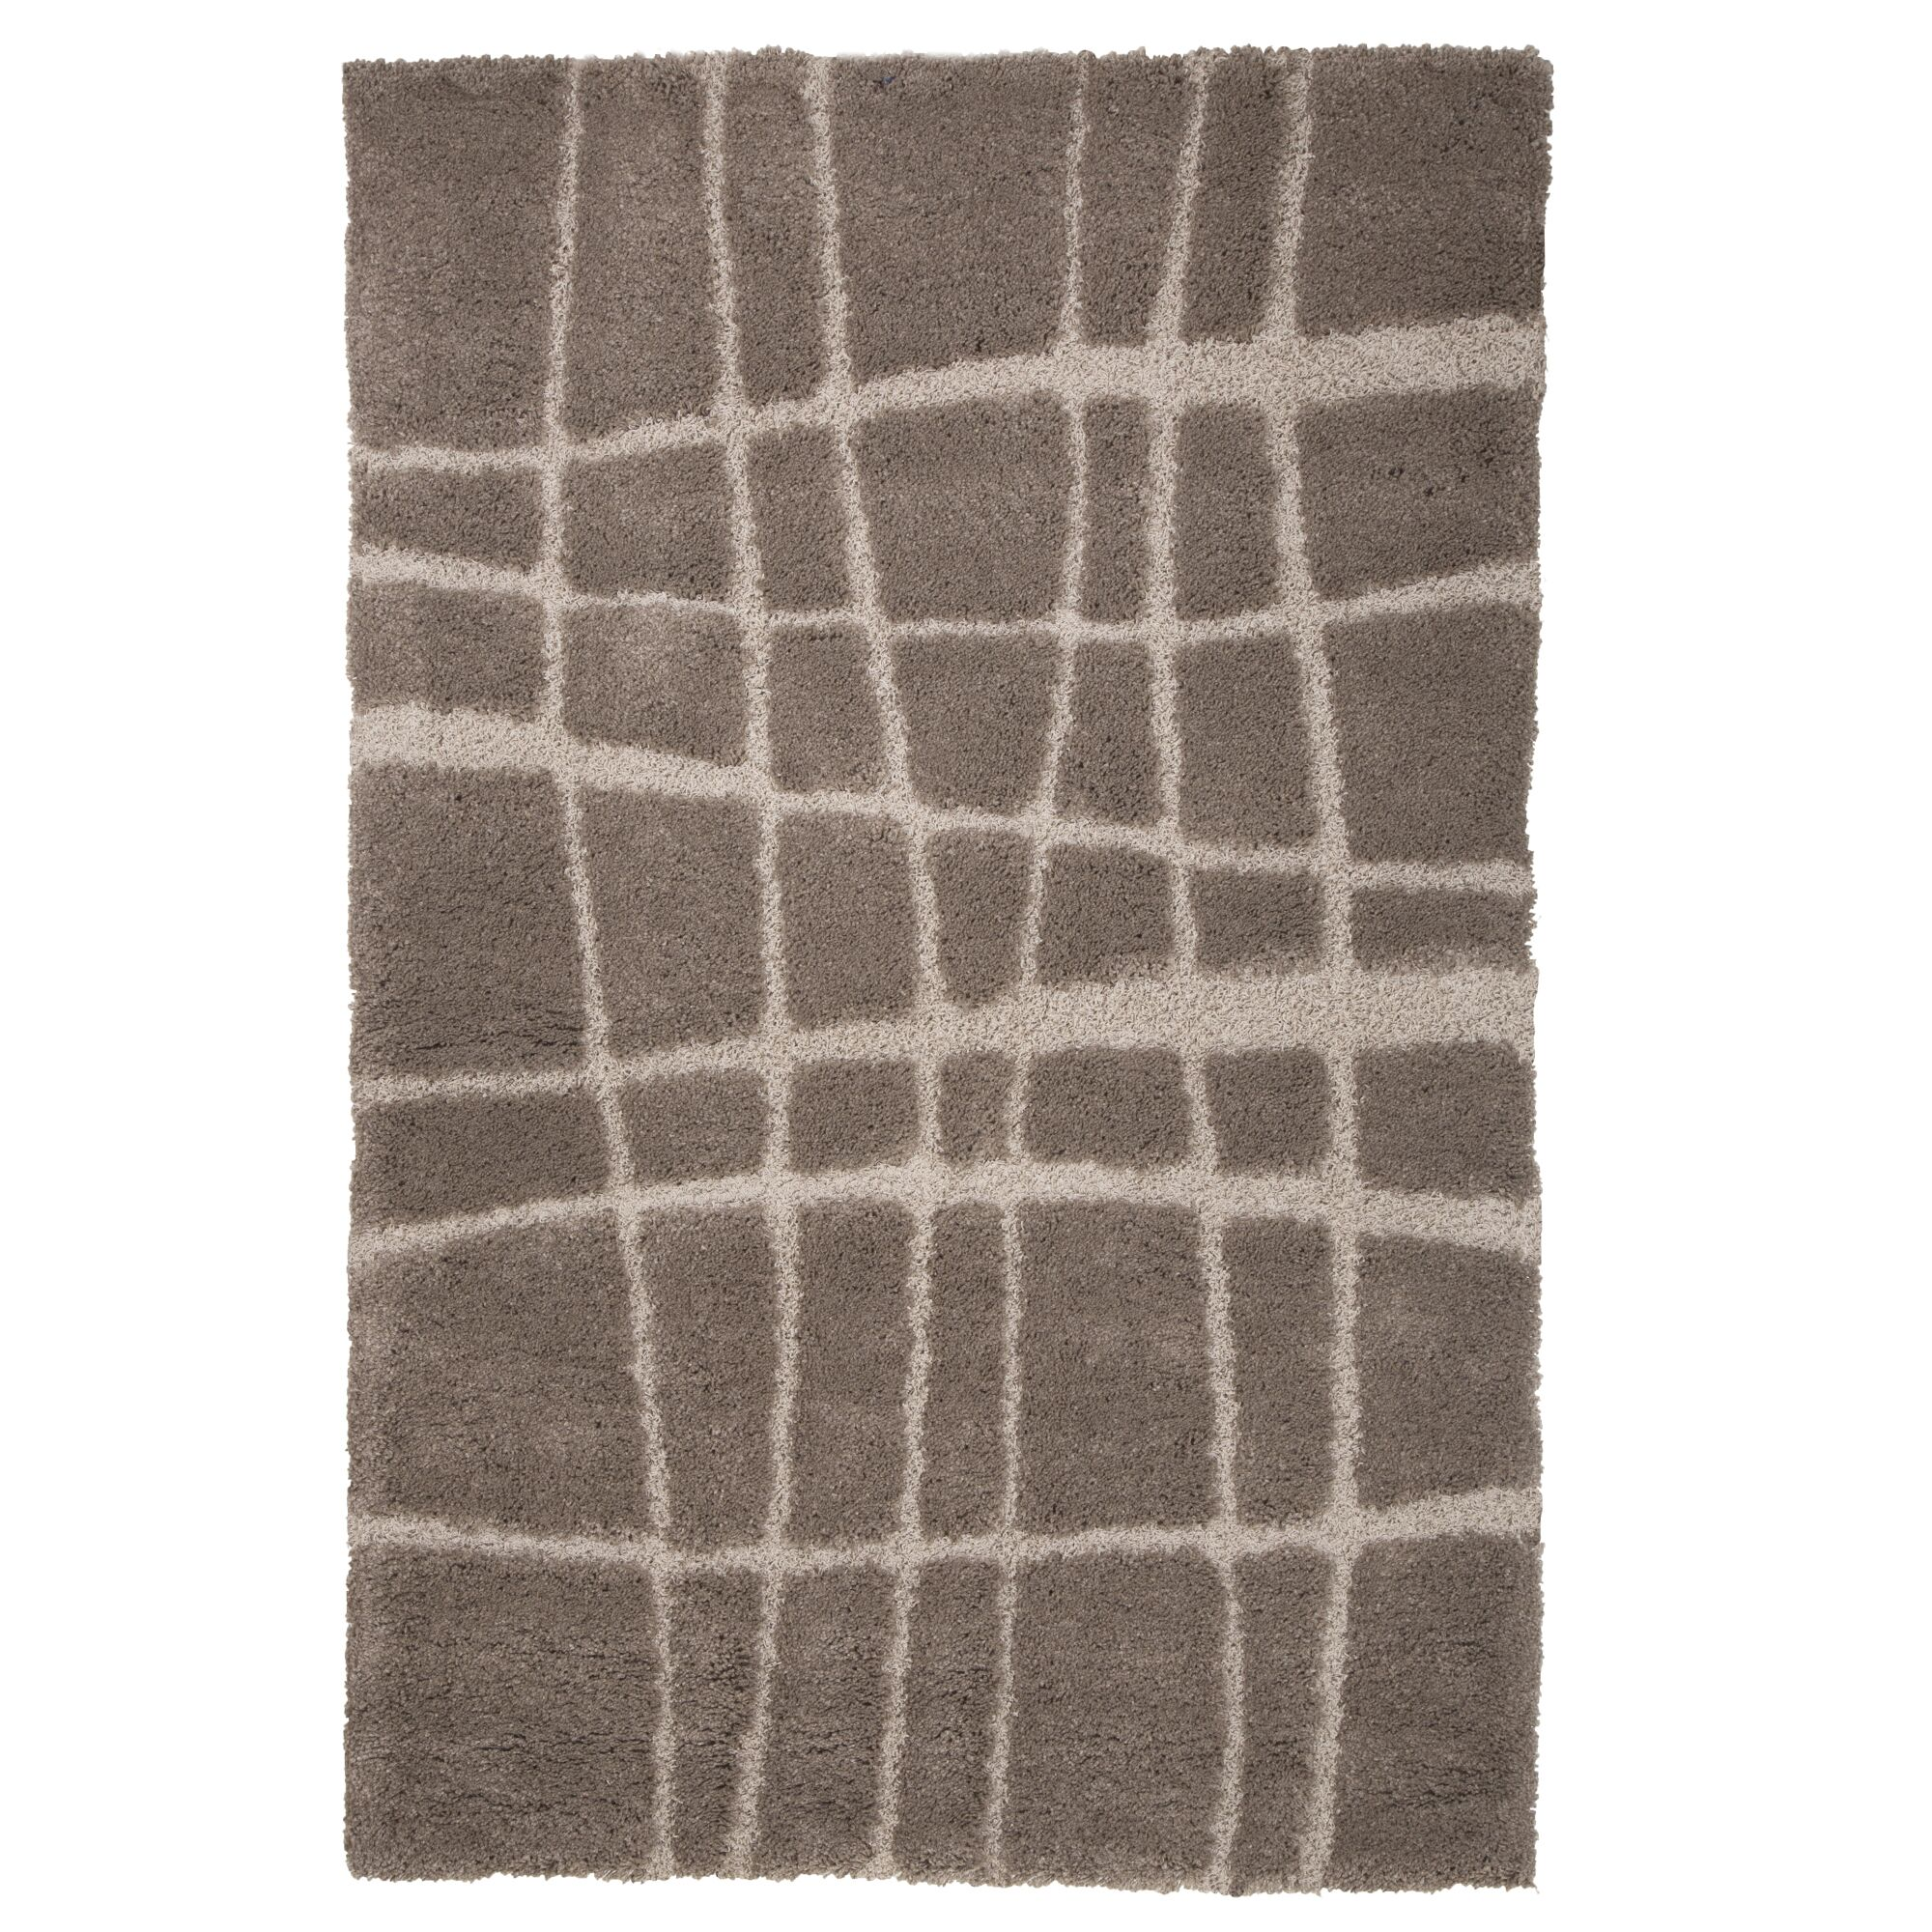 Danil Hand-Woven Brown Area Rug Rug Size: 4' x 6'